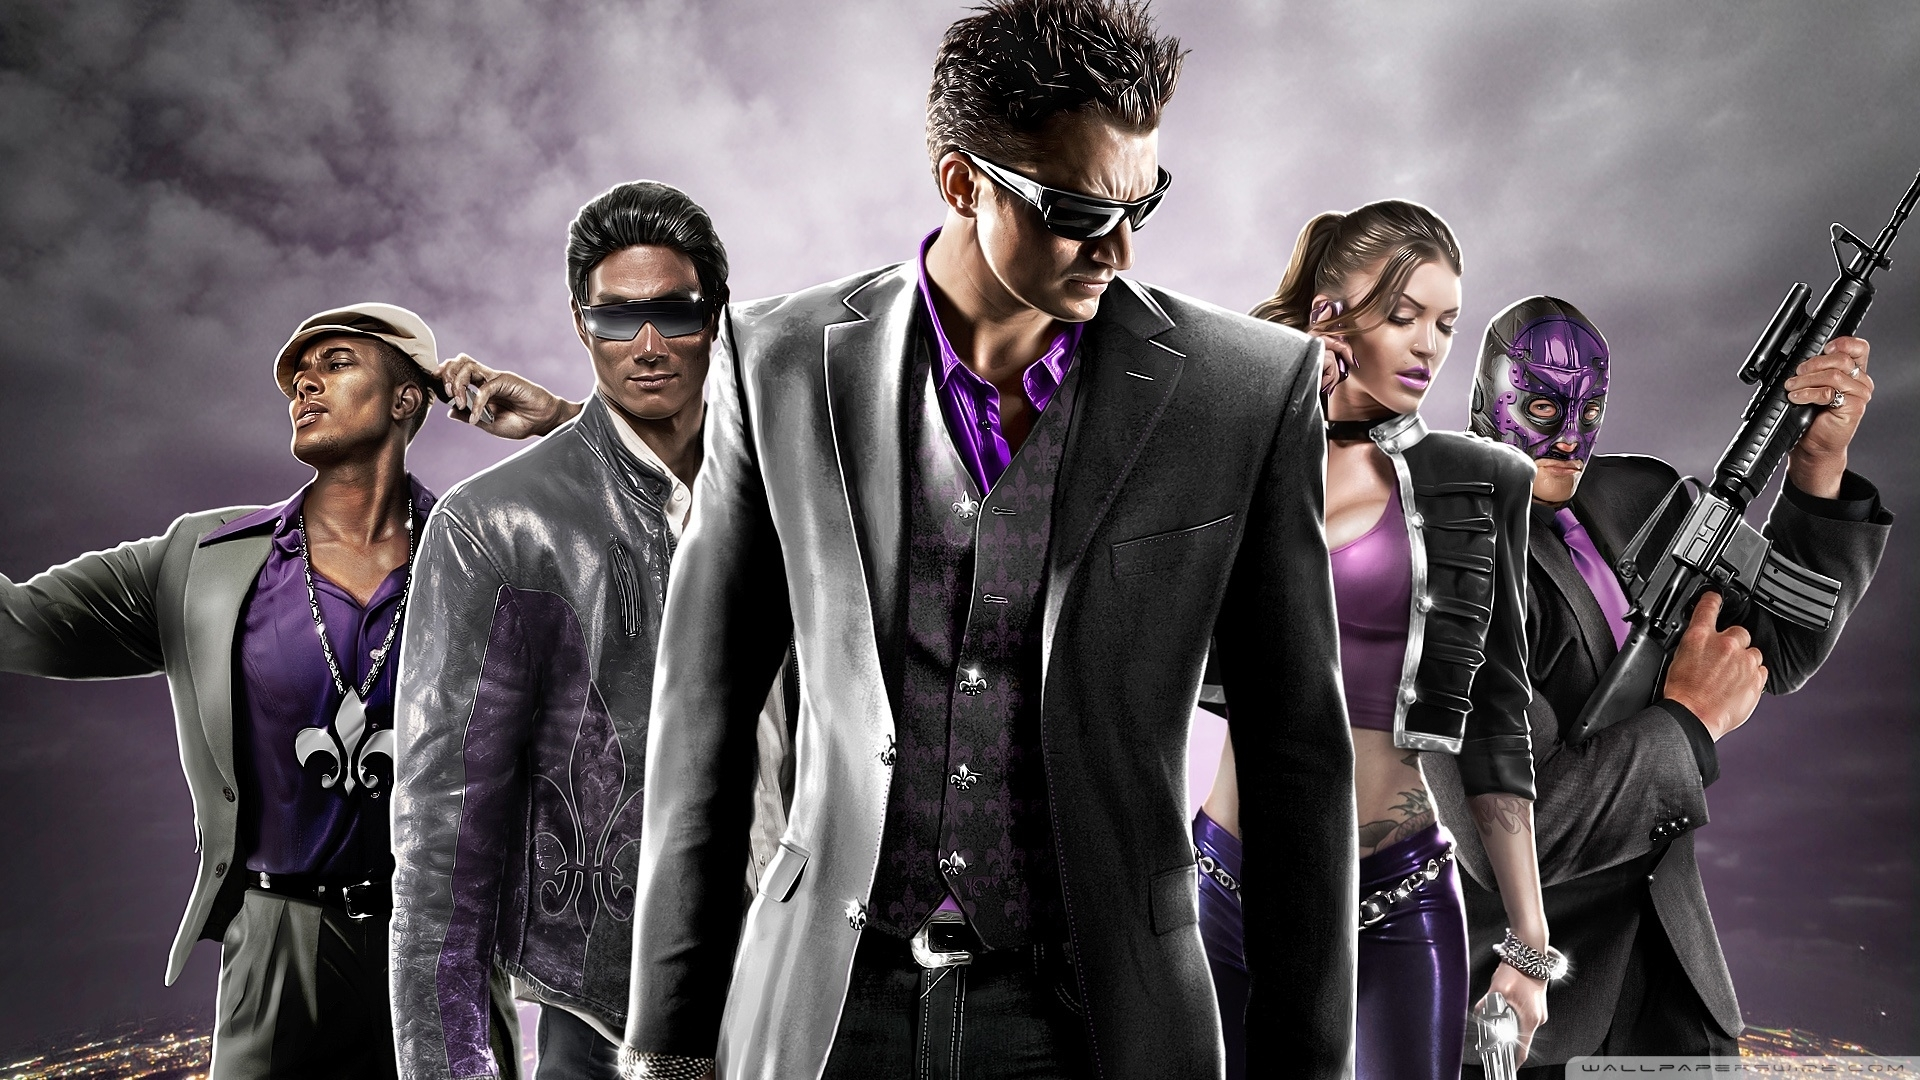 games saints row 4 wallpapers (desktop, phone, tablet) - awesome